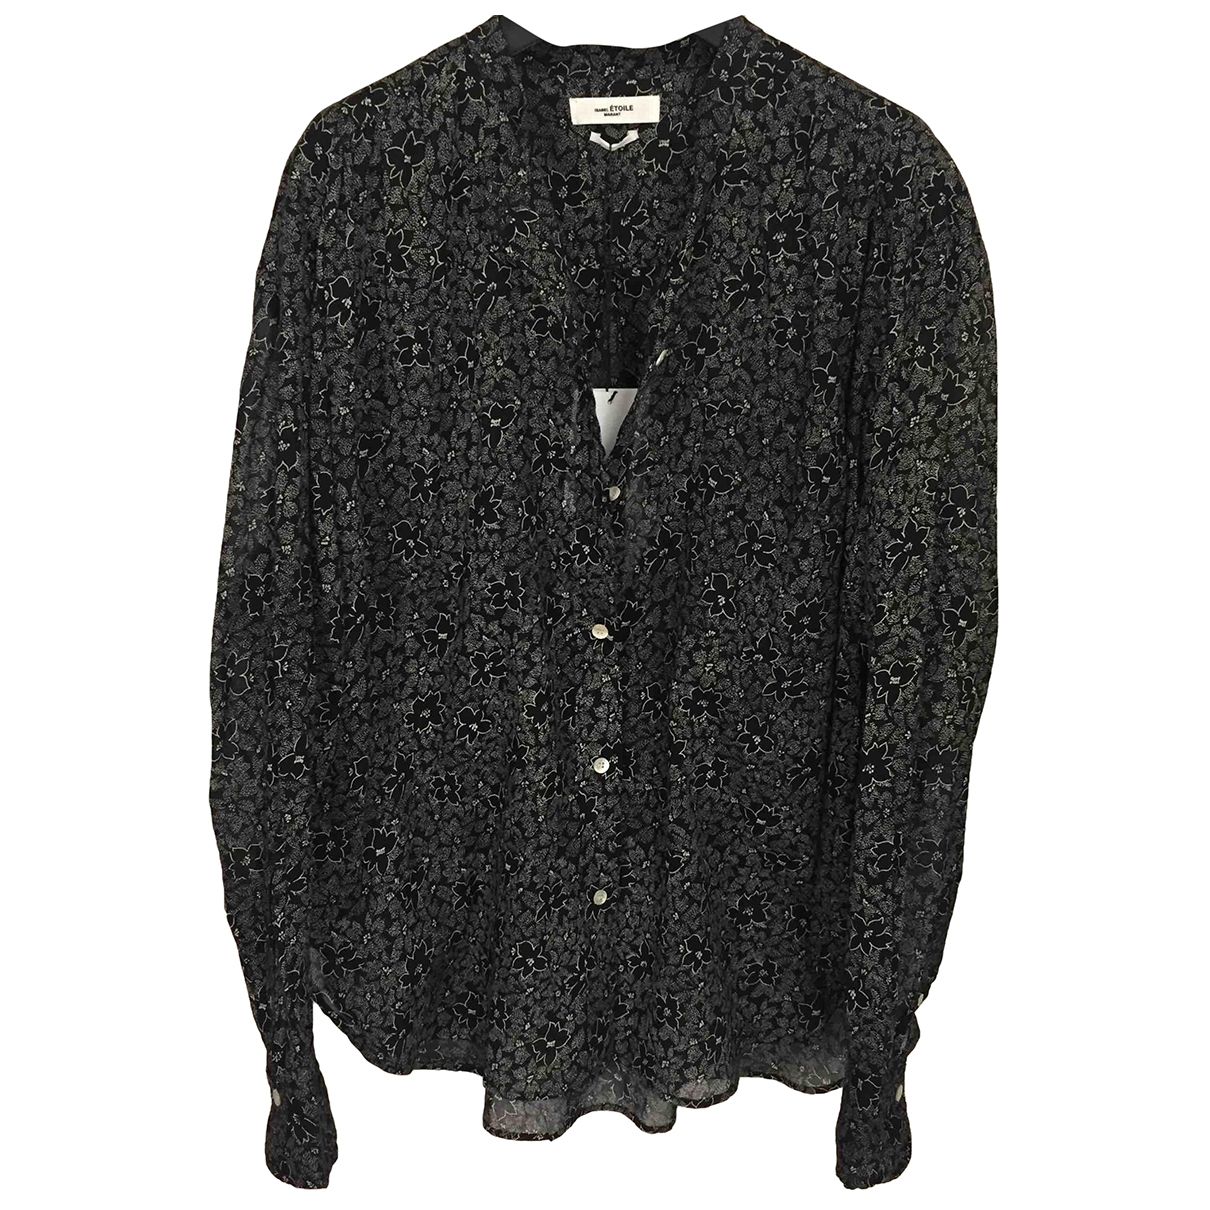 Isabel Marant Etoile \N Cotton  top for Women 42 IT